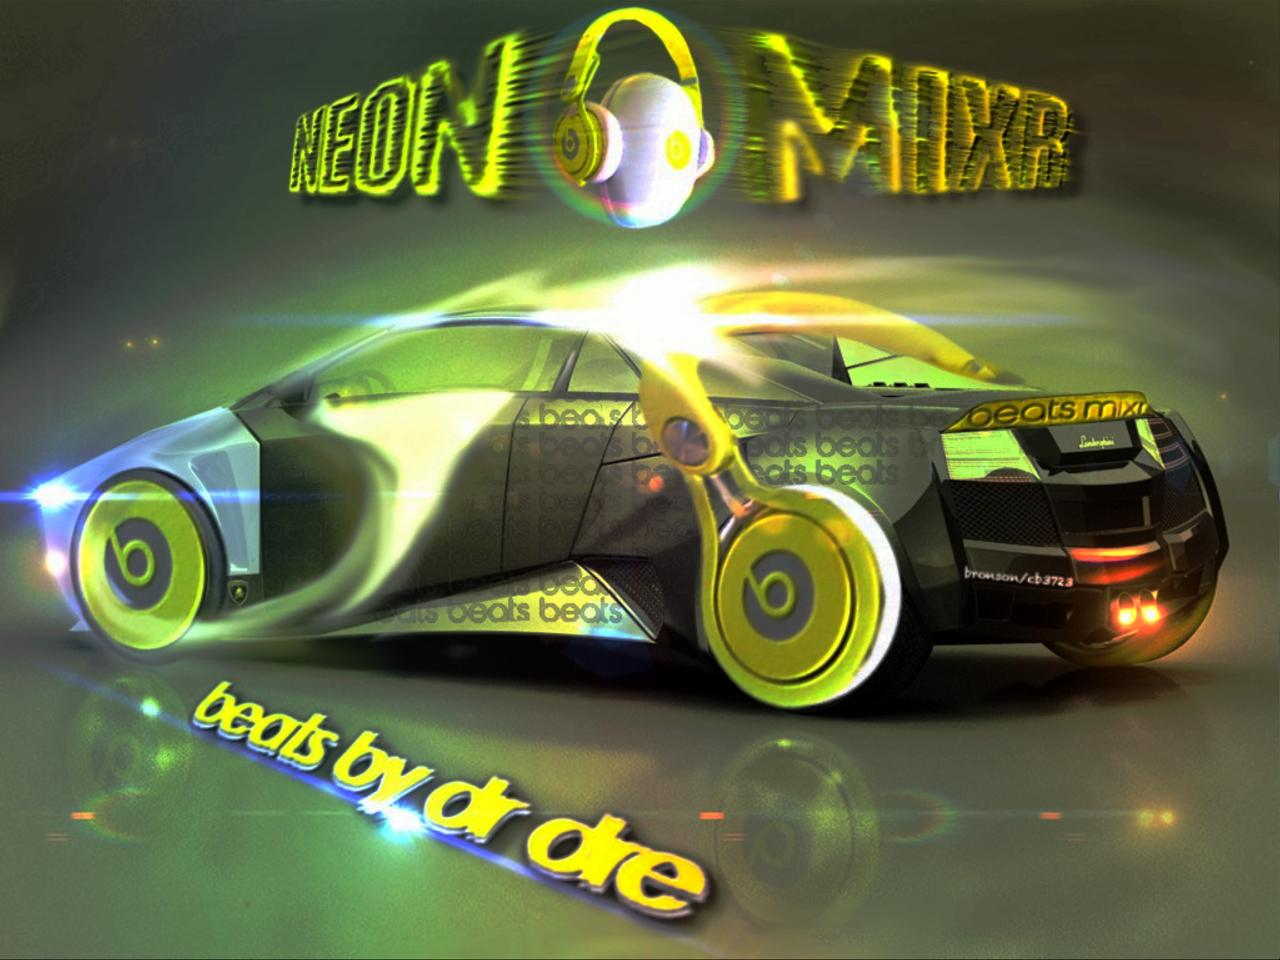 beats mixr / Lambourghini photo manipulation art